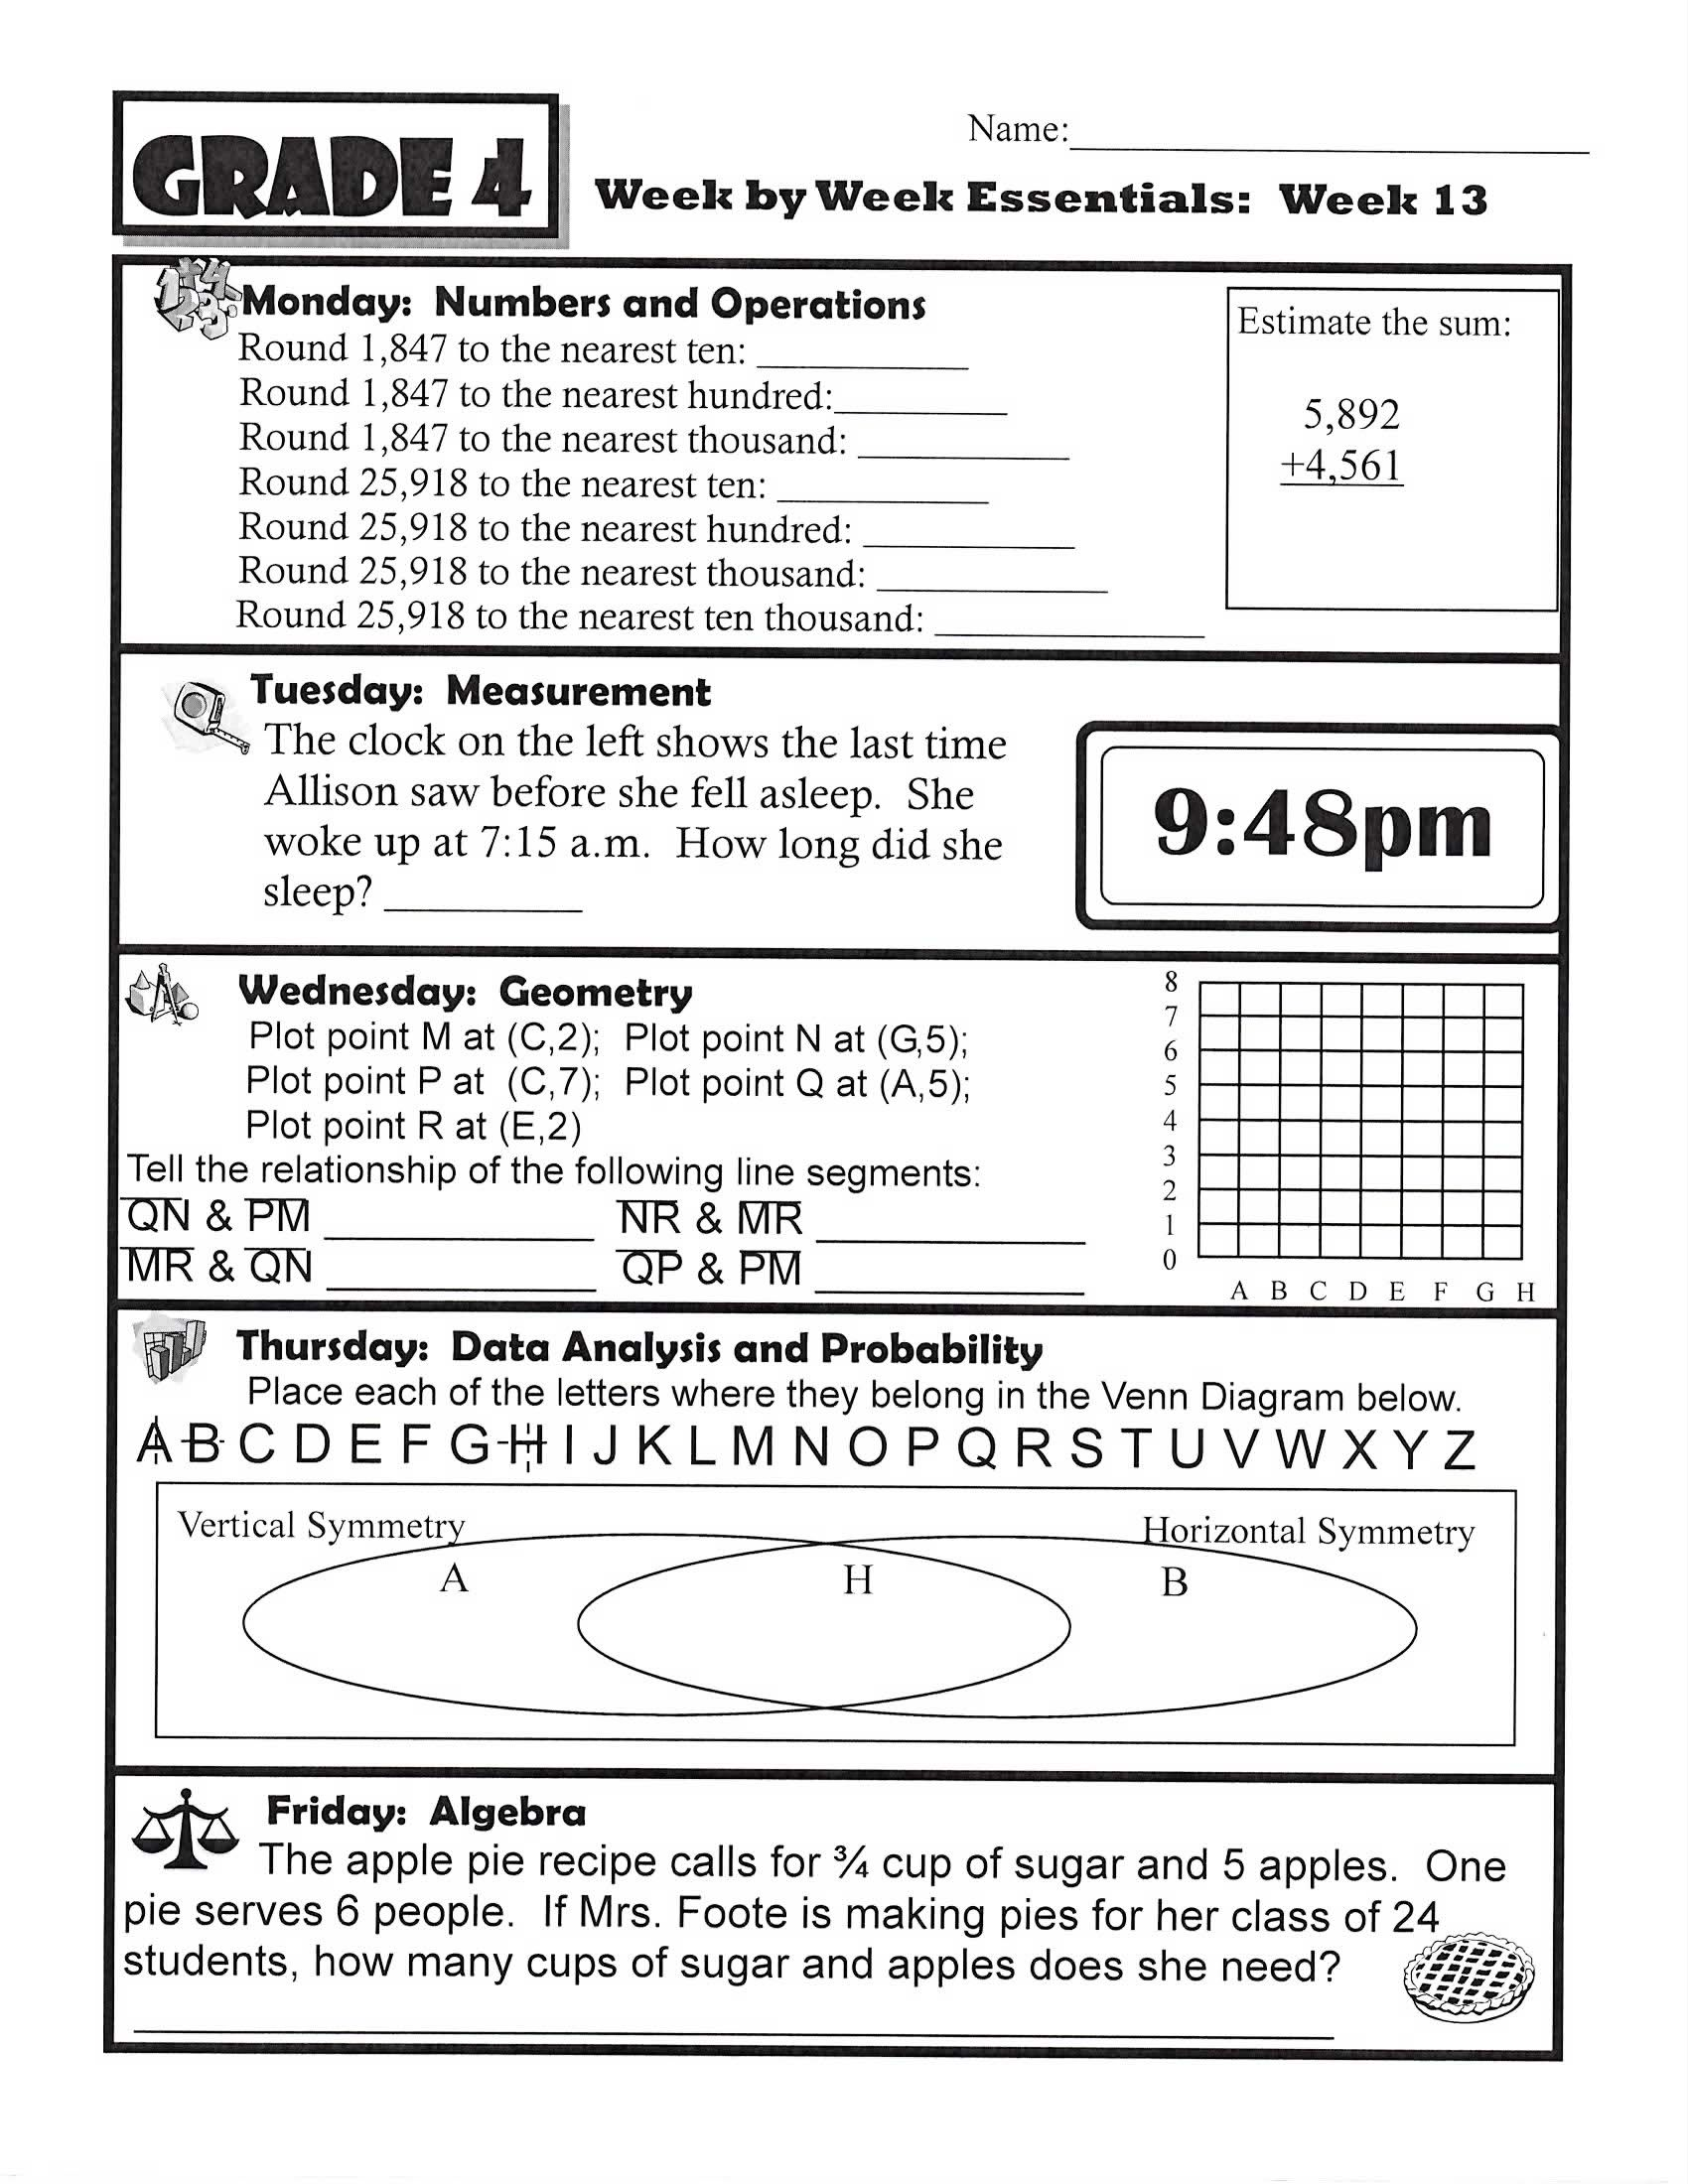 Worksheet Homework For 4th Graders 4th grade homework sheets foote in math tags grade